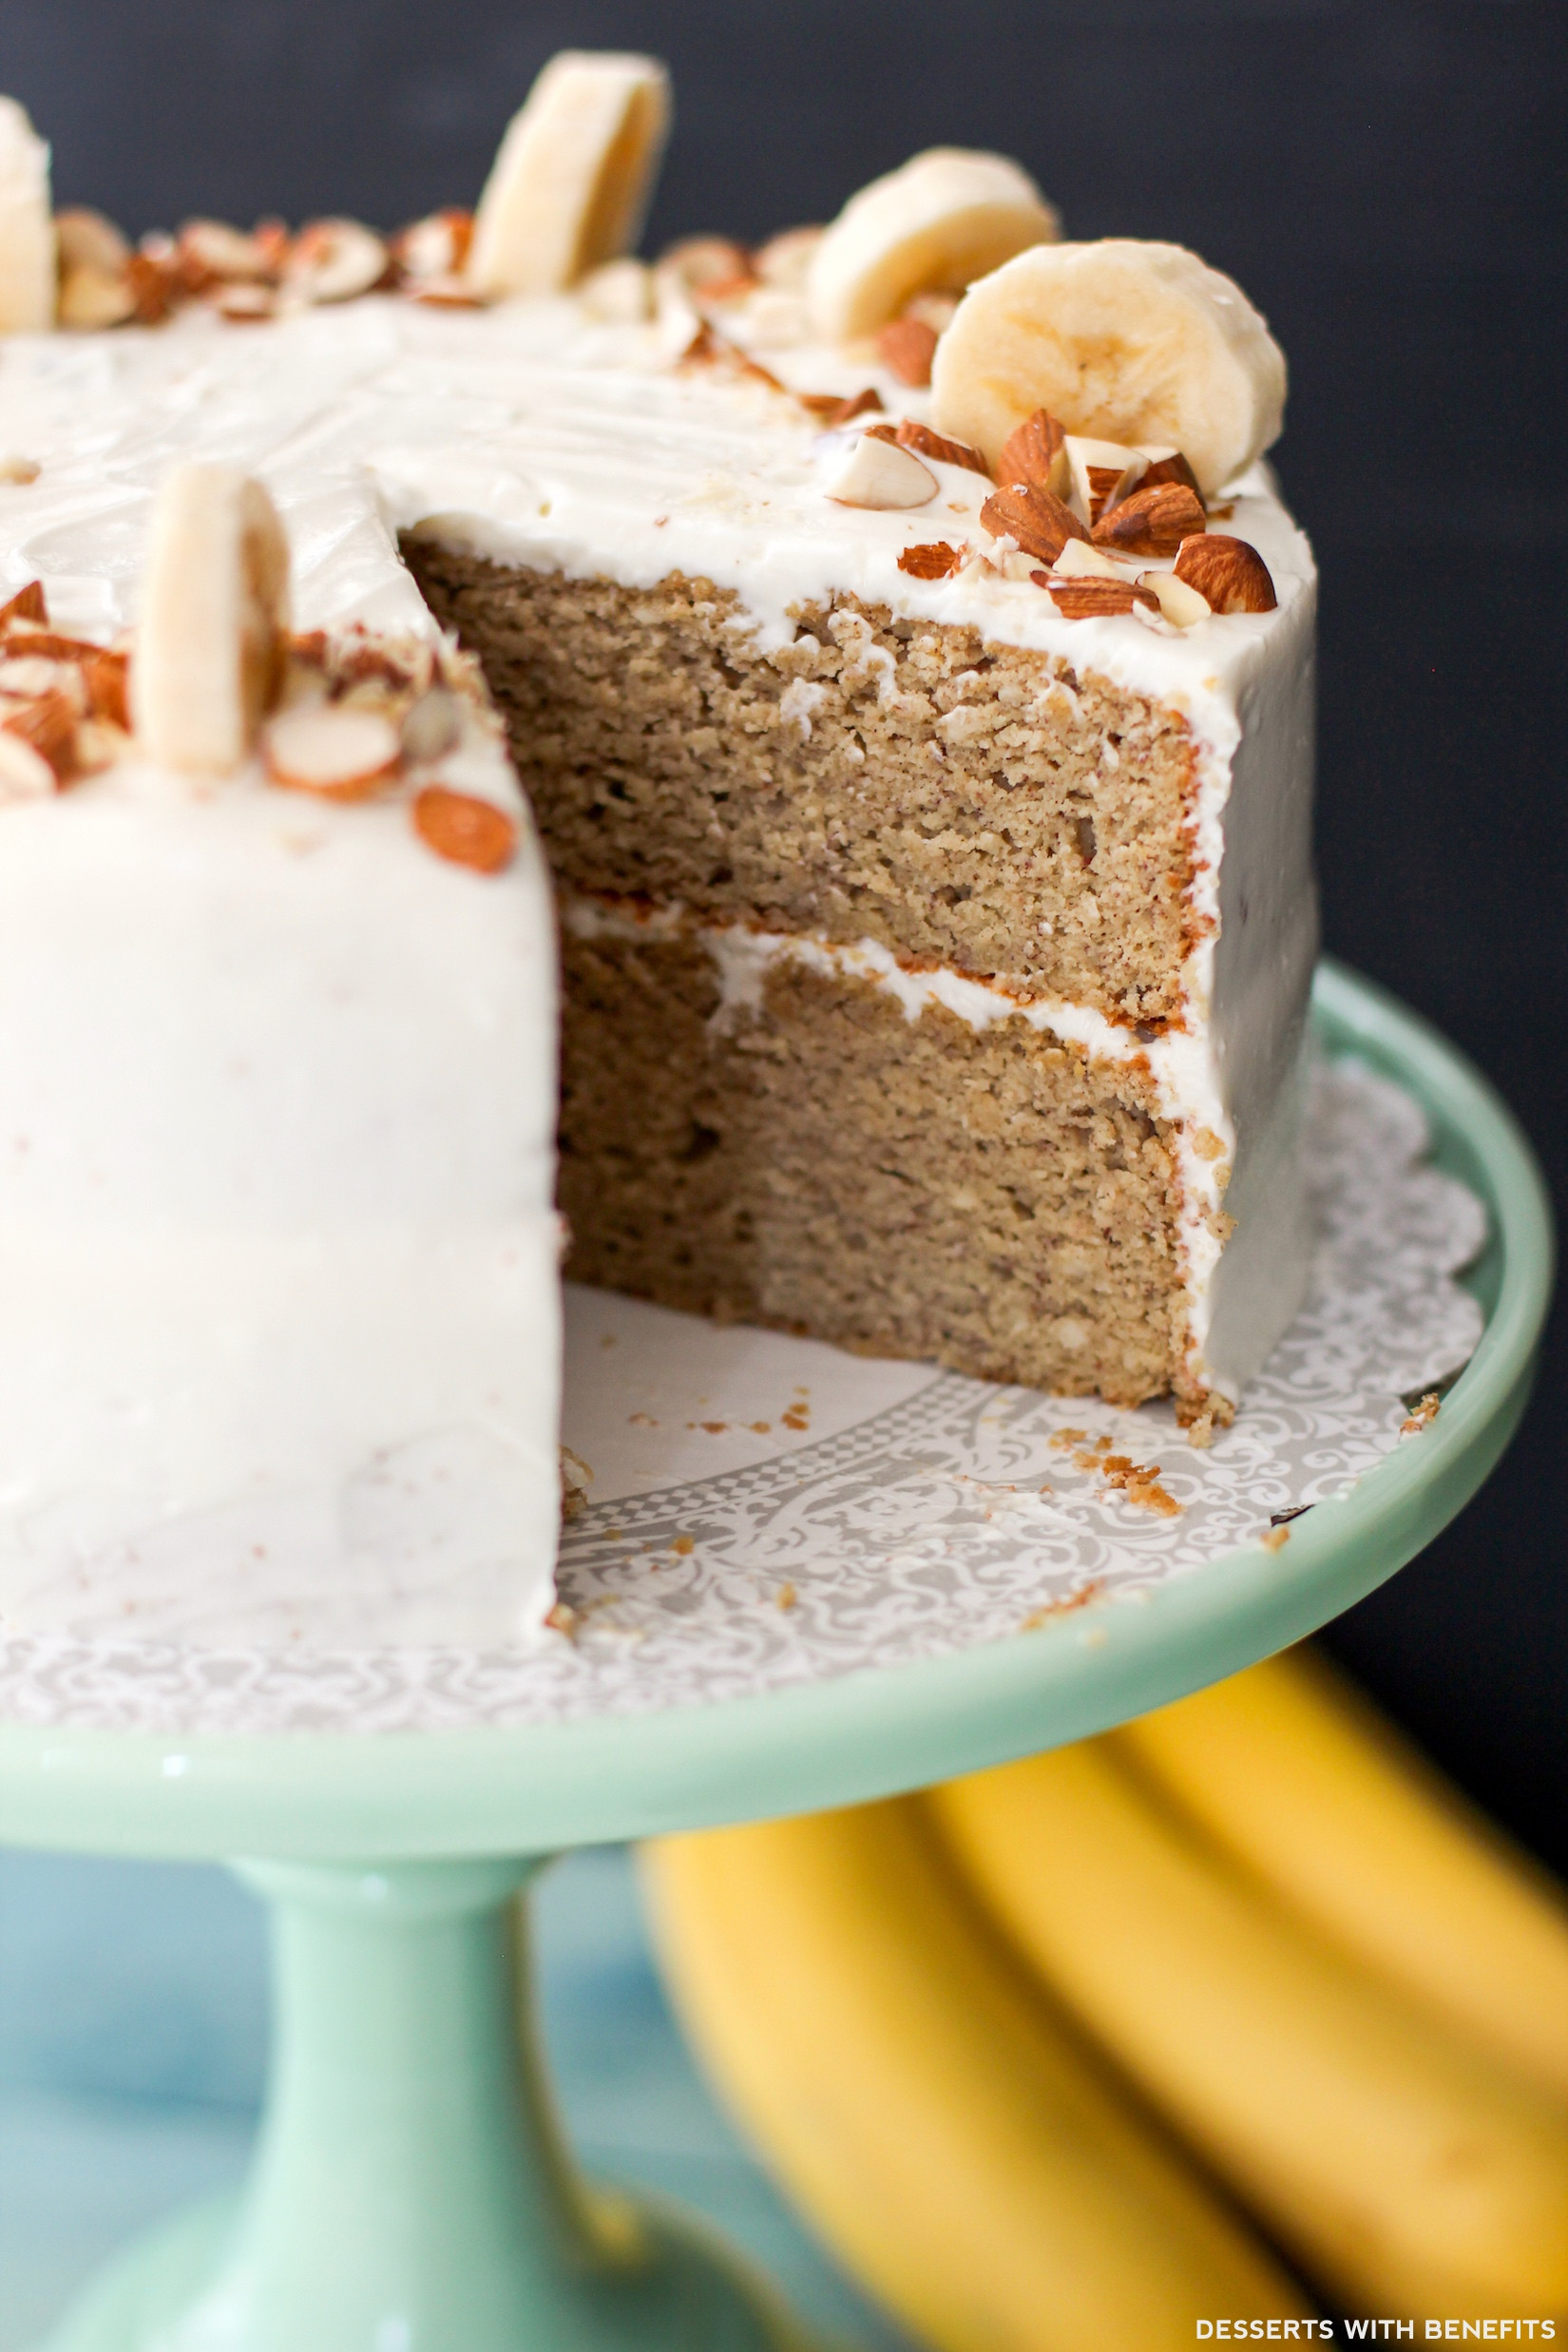 Healthy Gluten Free Dessert Recipes  Gluten Free Healthy Banana Cake with Cream Cheese Frosting